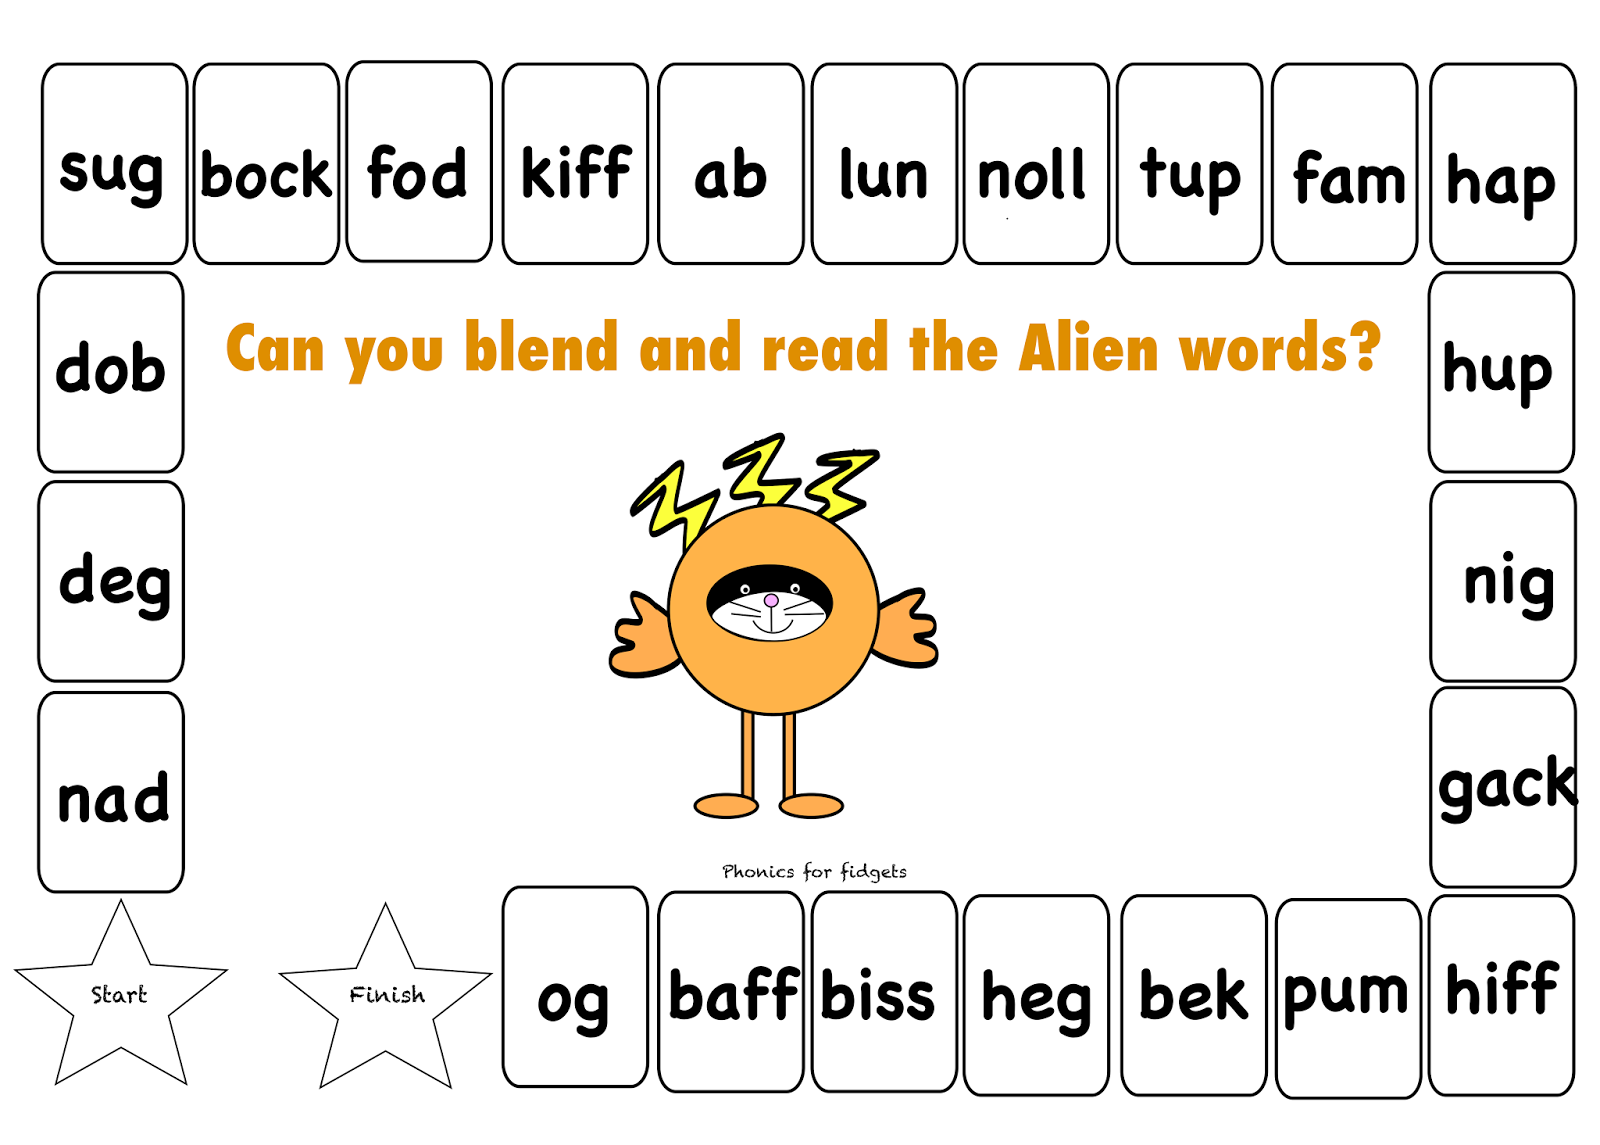 Worksheet Ph Sound Words 1000 ideas about phase 5 phonics on pinterest play this board game makes use of alien words using all the sounds from 2 letters and children can together